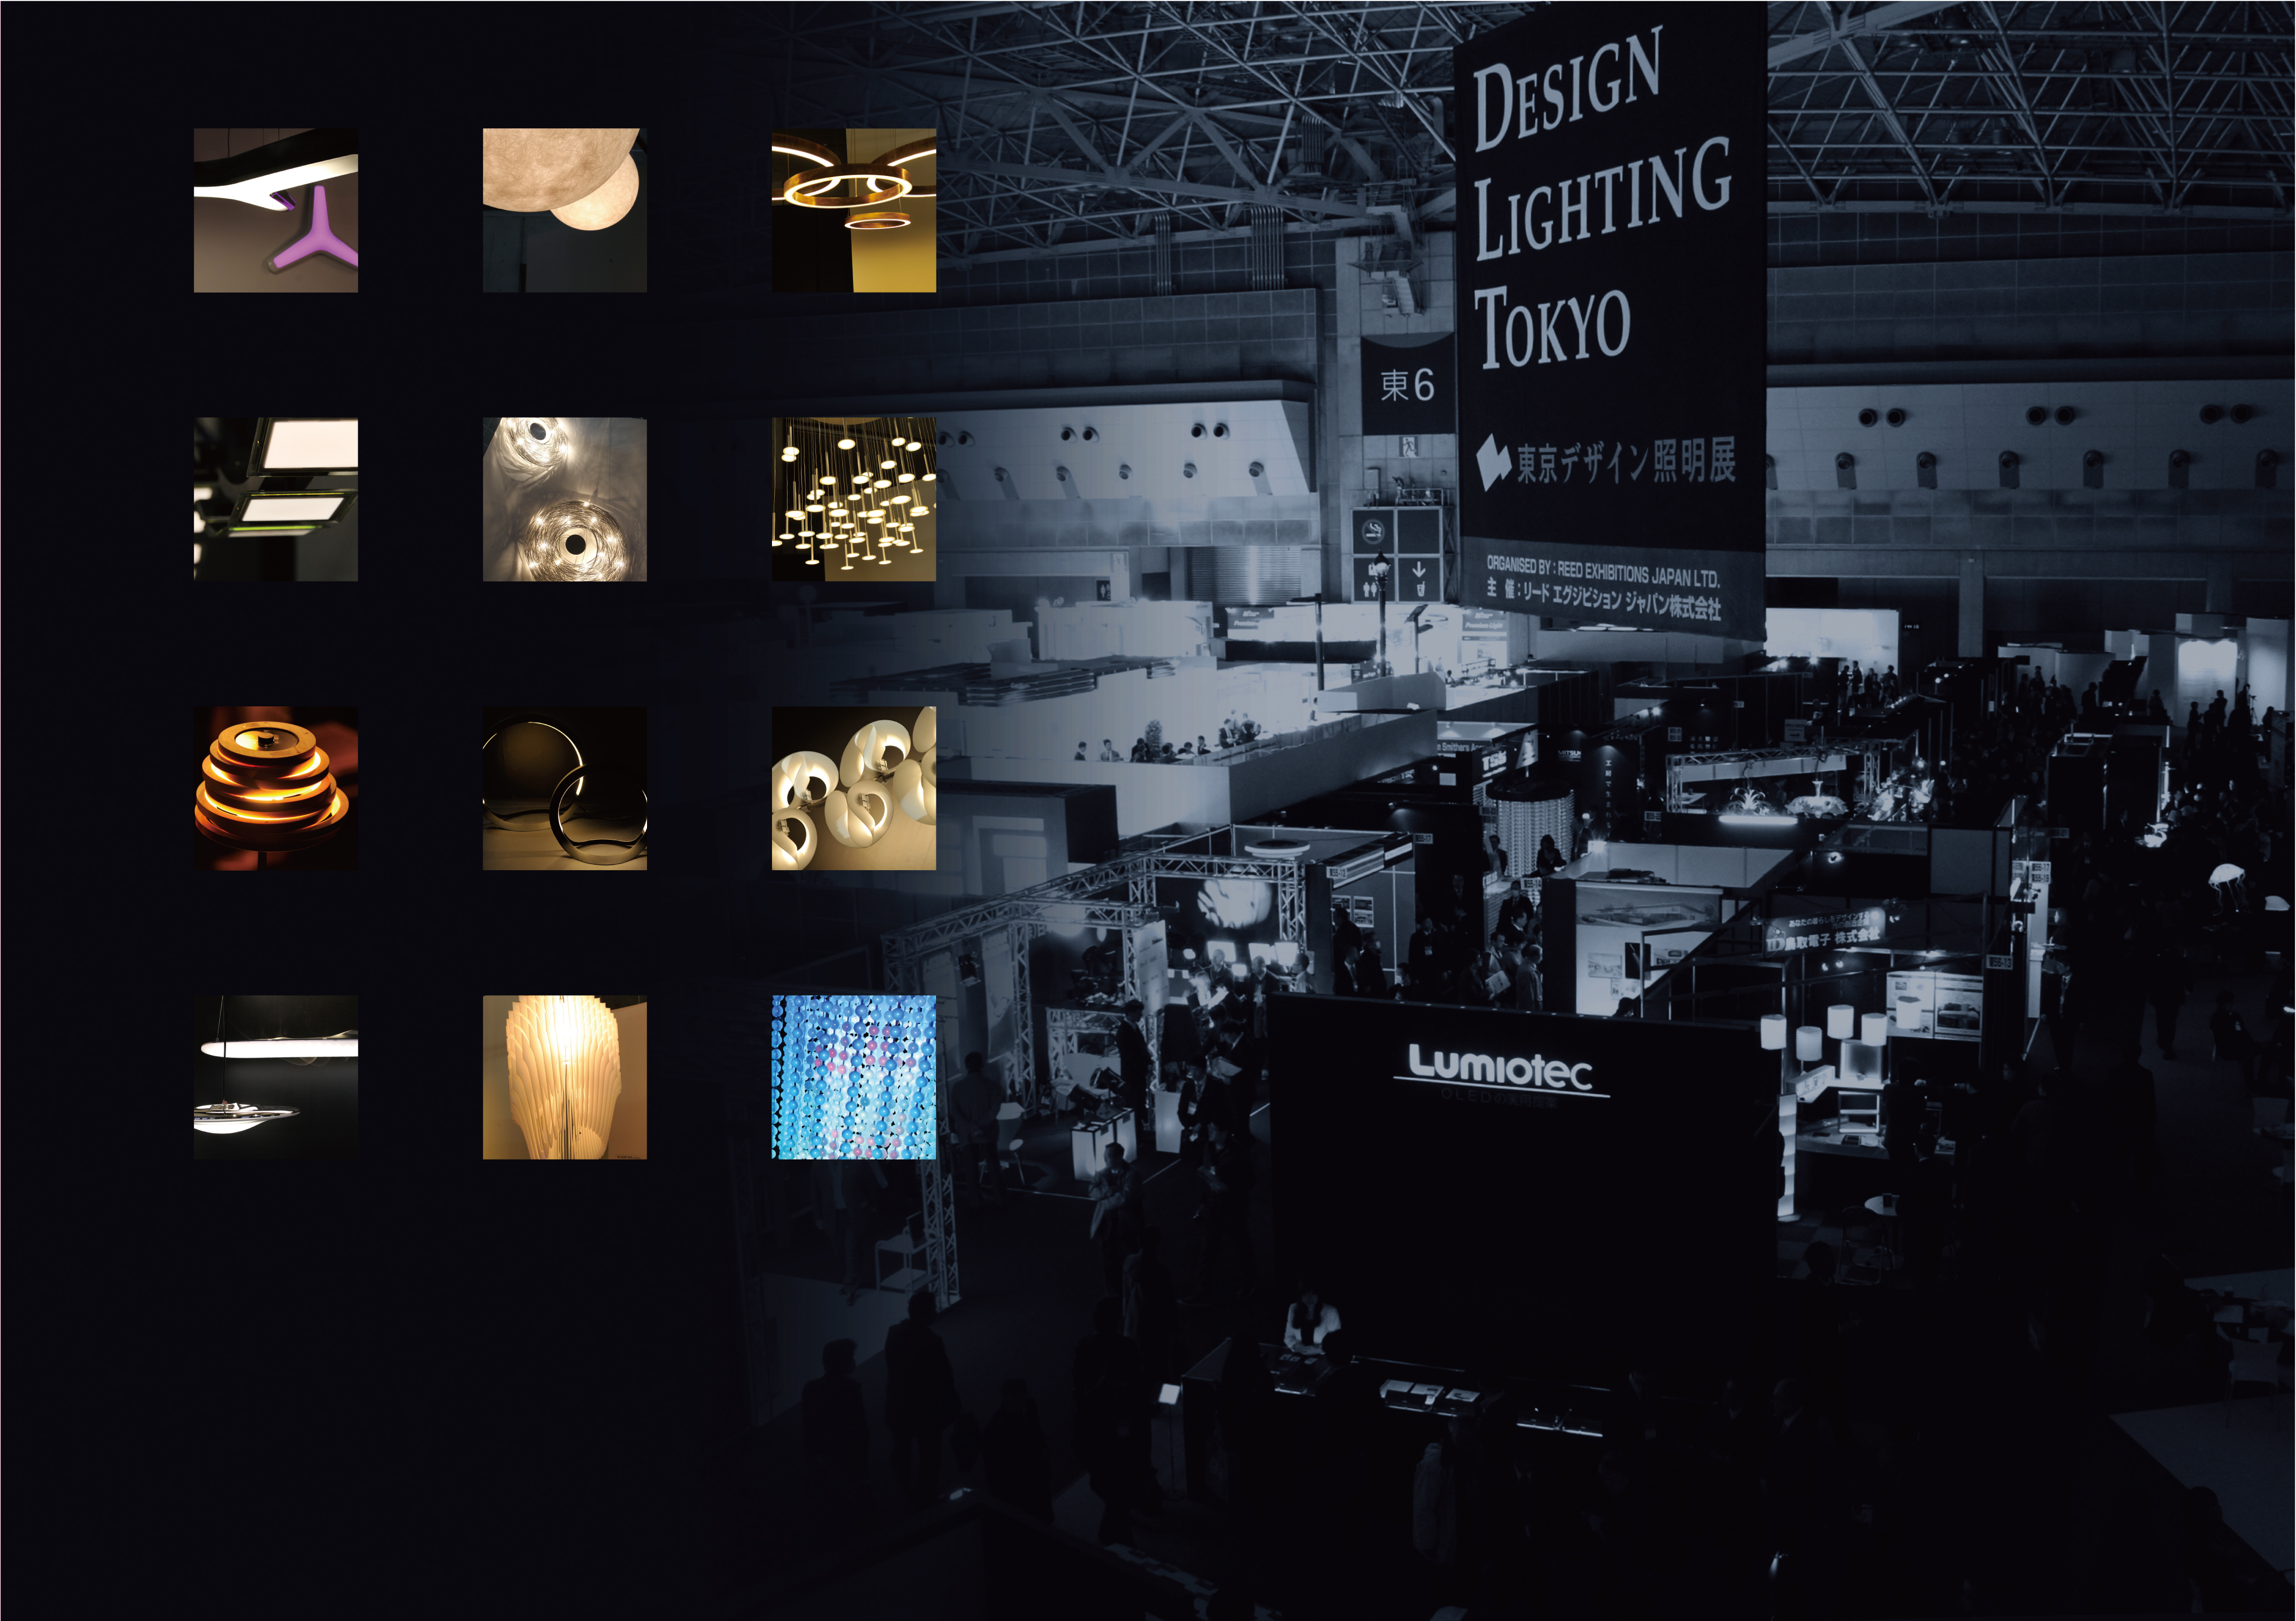 The exhibition for stylish and innovative design lightings, DESIGN LIGHTING TOKYO 2014 took place in a great success from January 15 to 17, doubling the number of exhibitors from 2013. (Graphic: Business Wire)